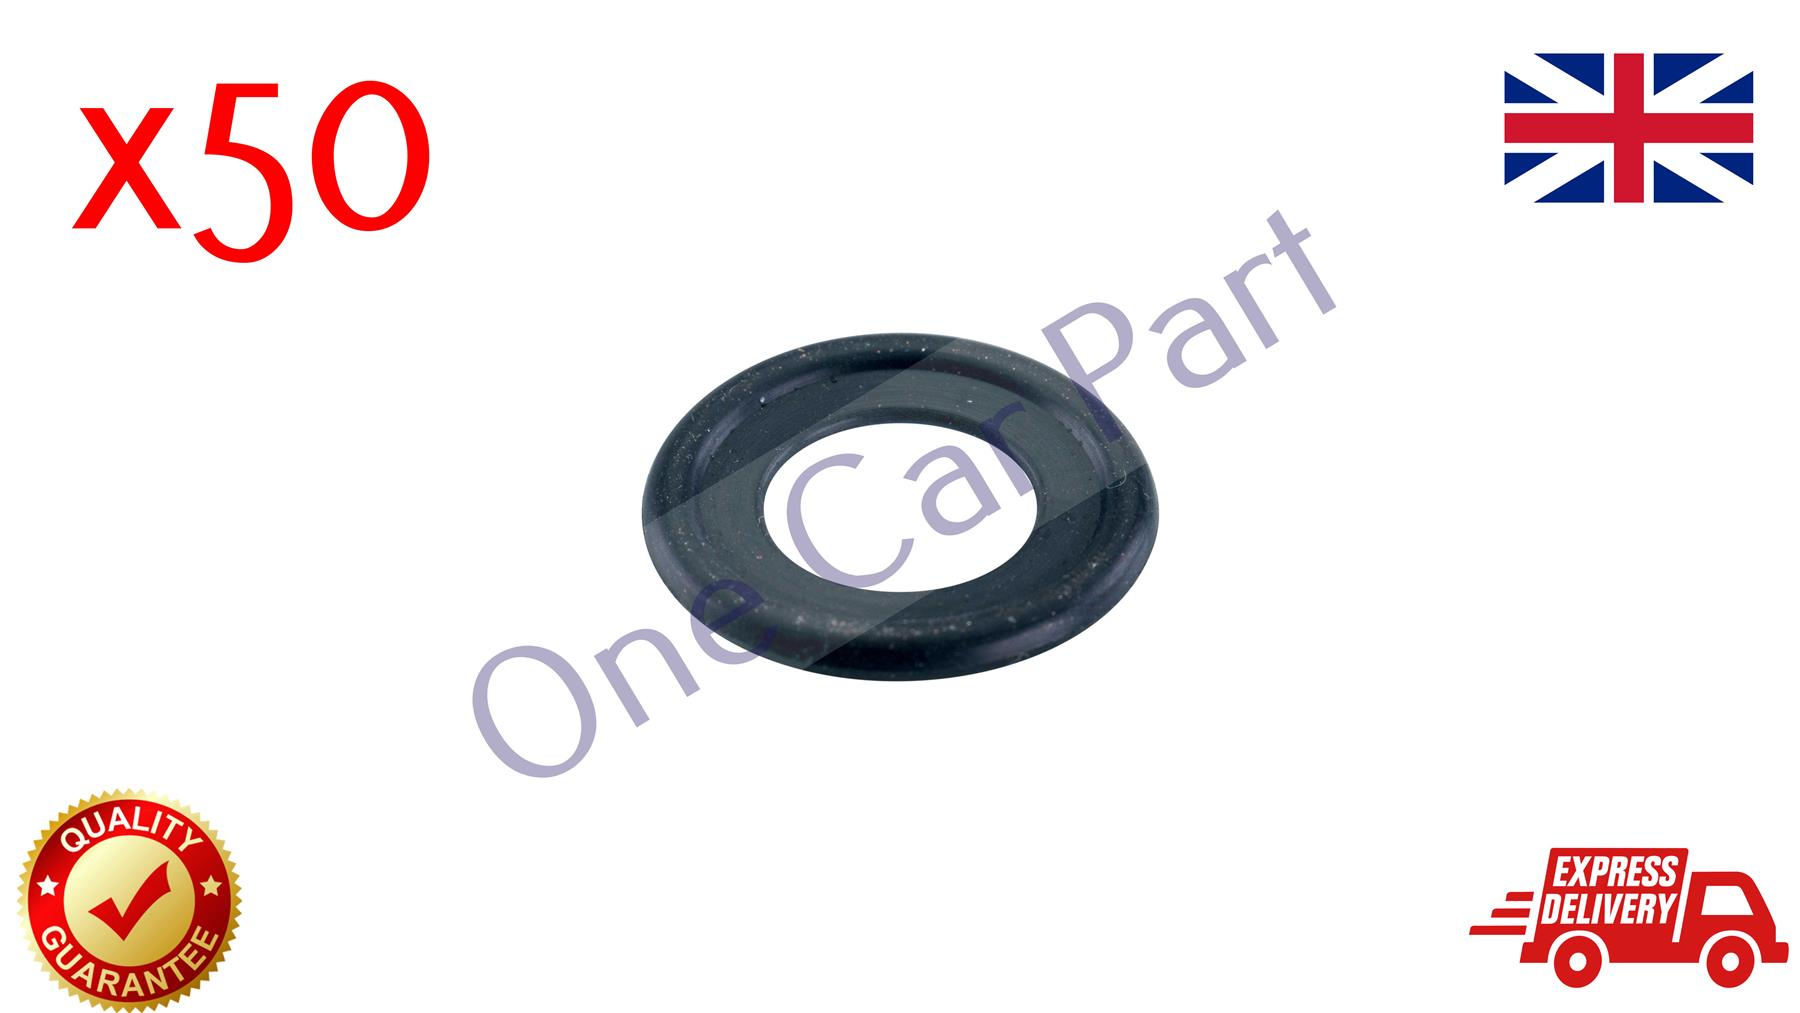 3 Pieces SUMP OIL DRAIN PLUG WASHER SEAL OPEL VAUXHALL 0652526S3 NEW